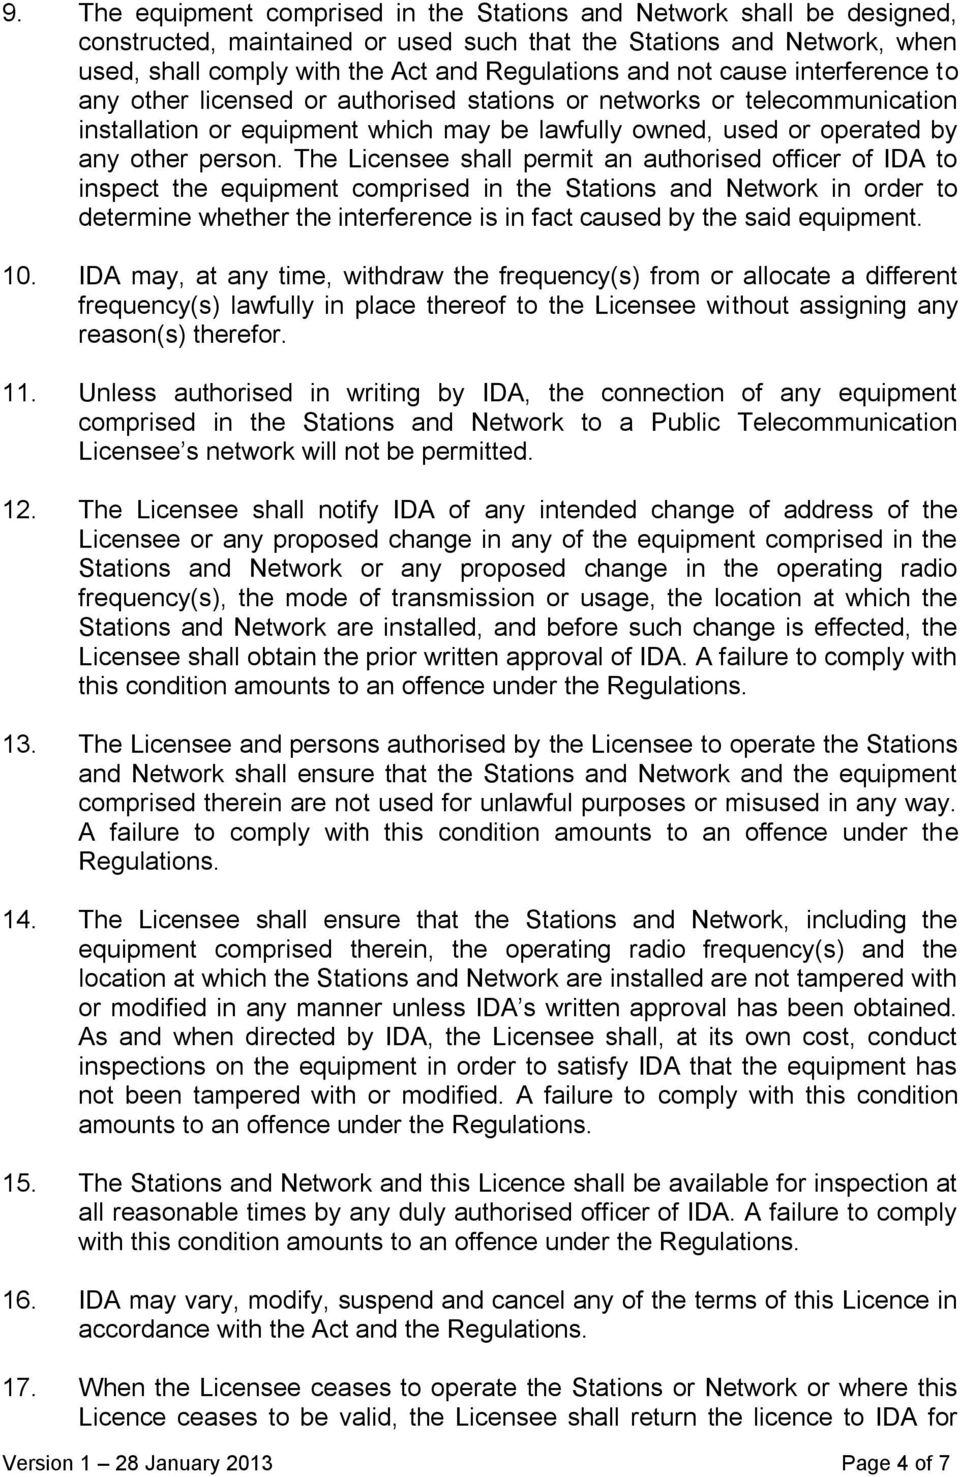 The Licensee shall permit an authorised officer of IDA to inspect the equipment comprised in the Stations and Network in order to determine whether the interference is in fact caused by the said